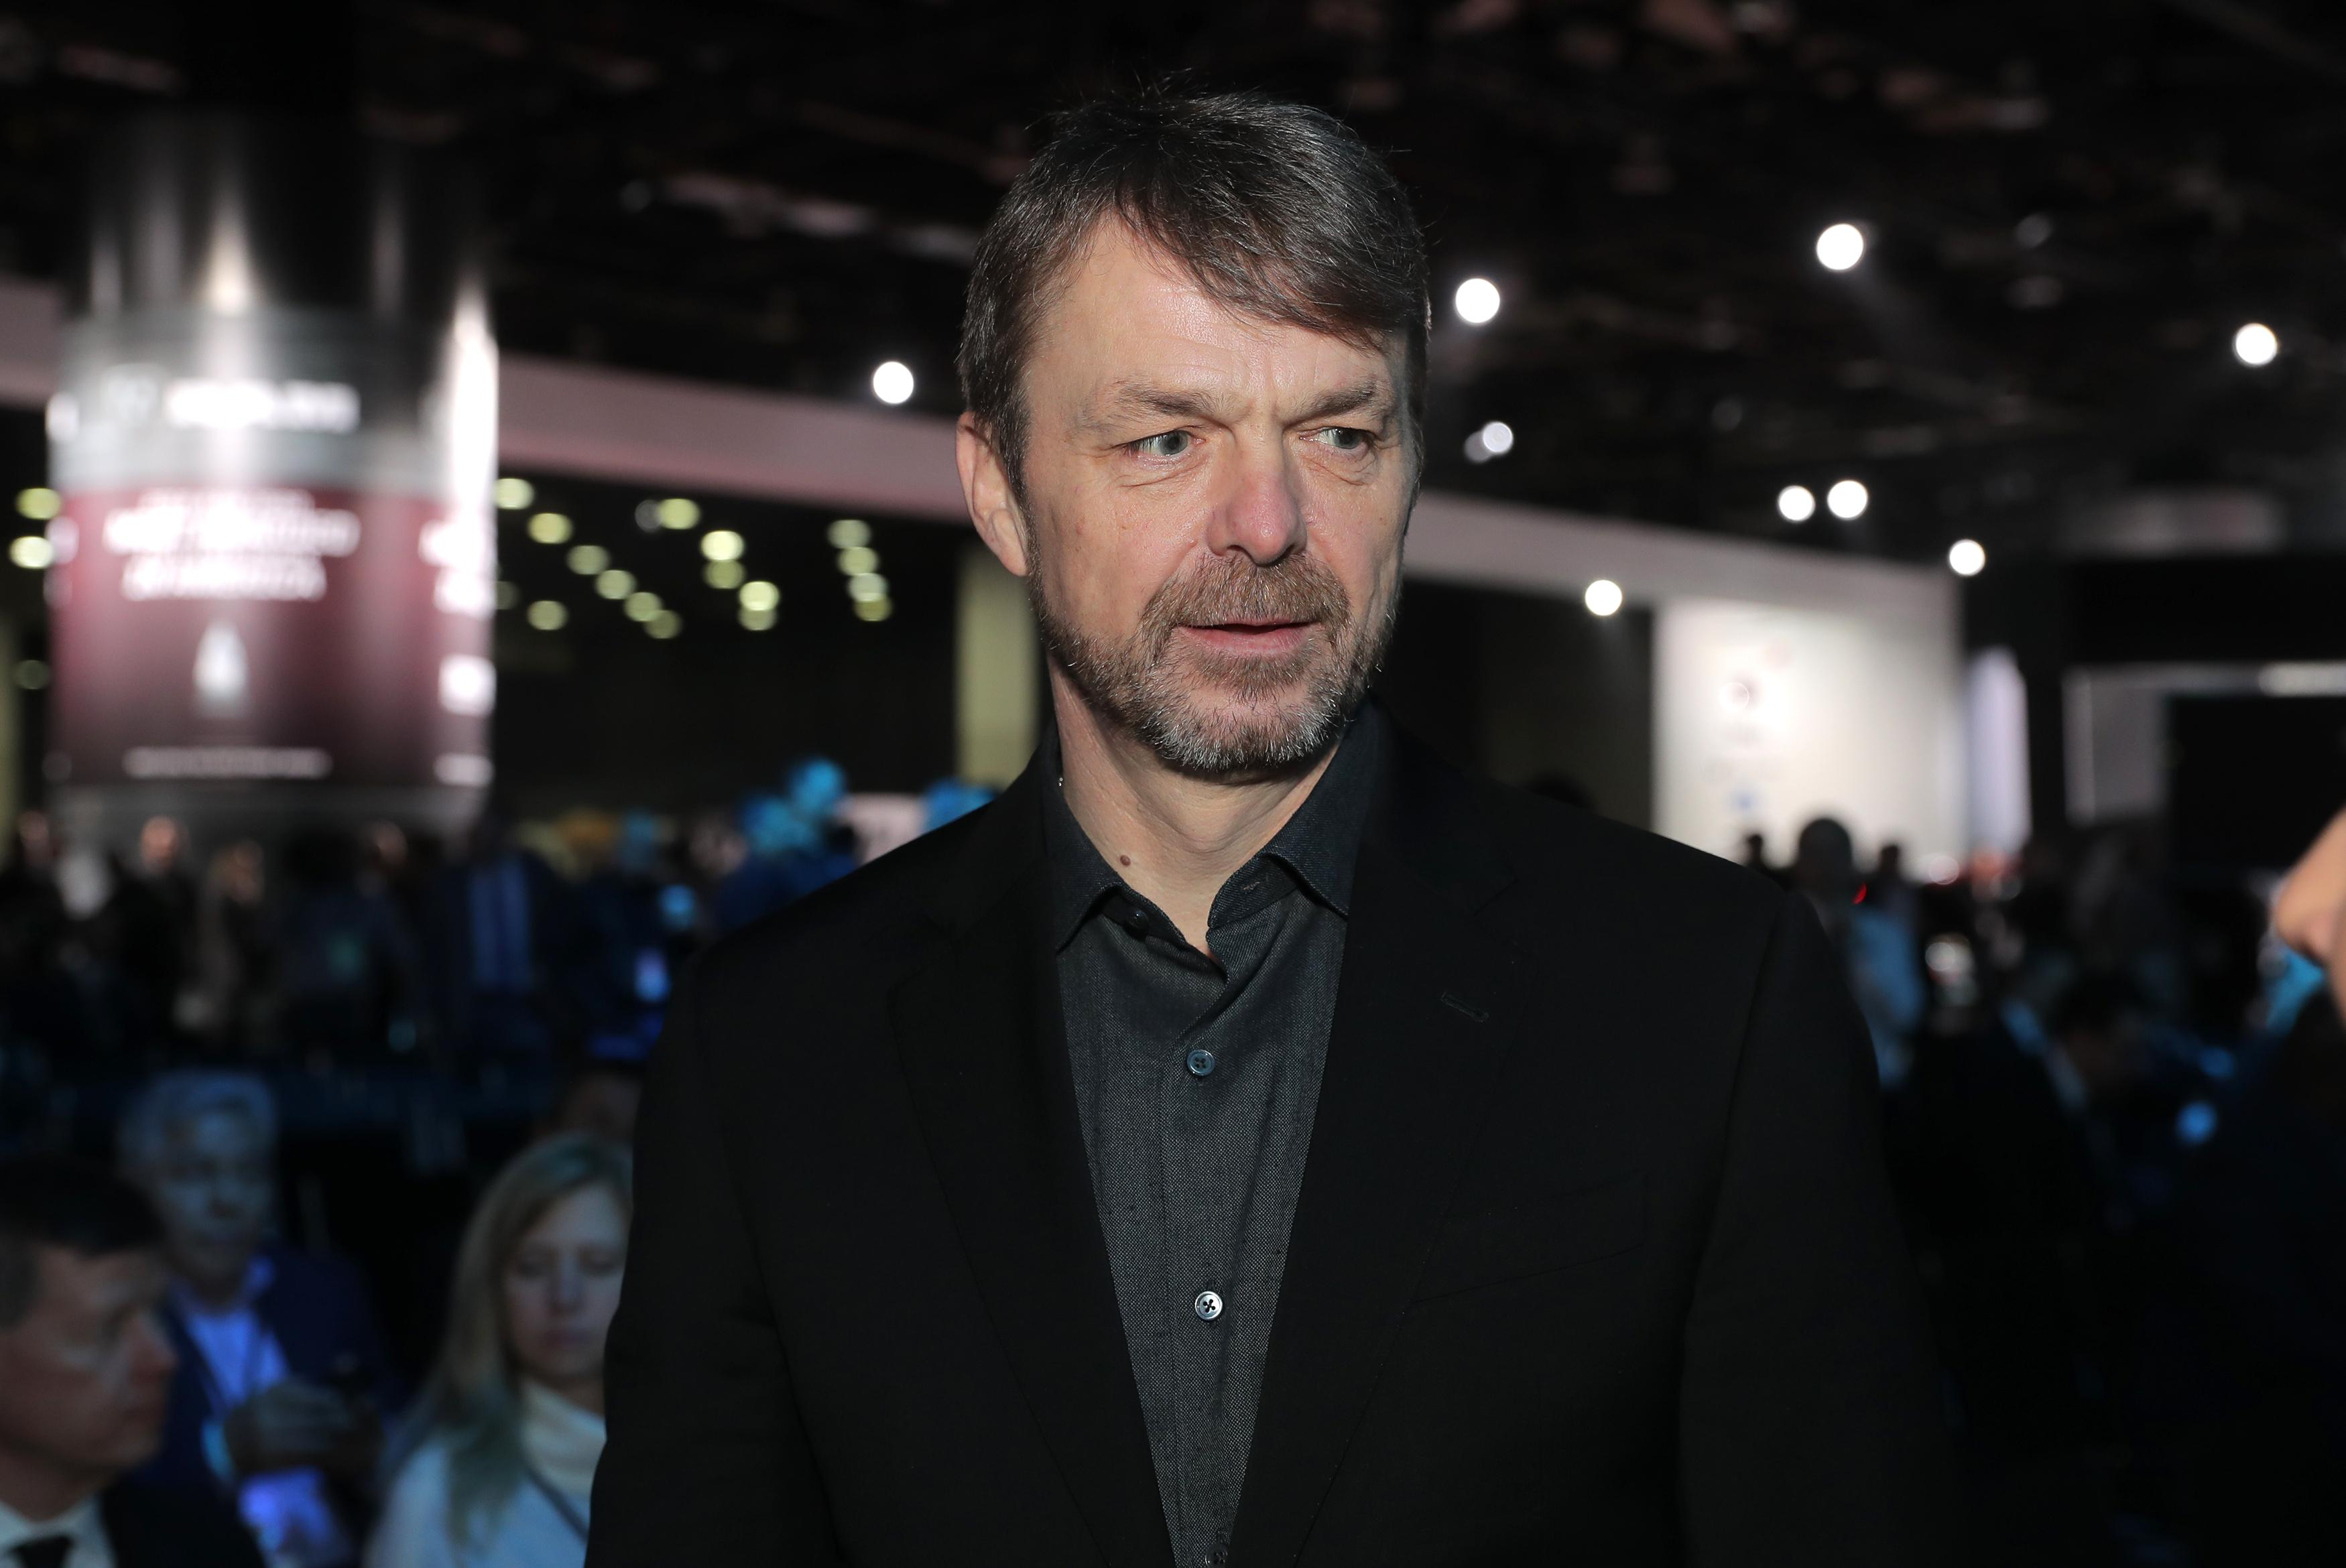 CEO of Fiat Chrysler Automobiles (FCA) Mike Manley attends the North American International Auto Show in Detroit, Michigan, U.S., January 14, 2019. Rebecca Cook